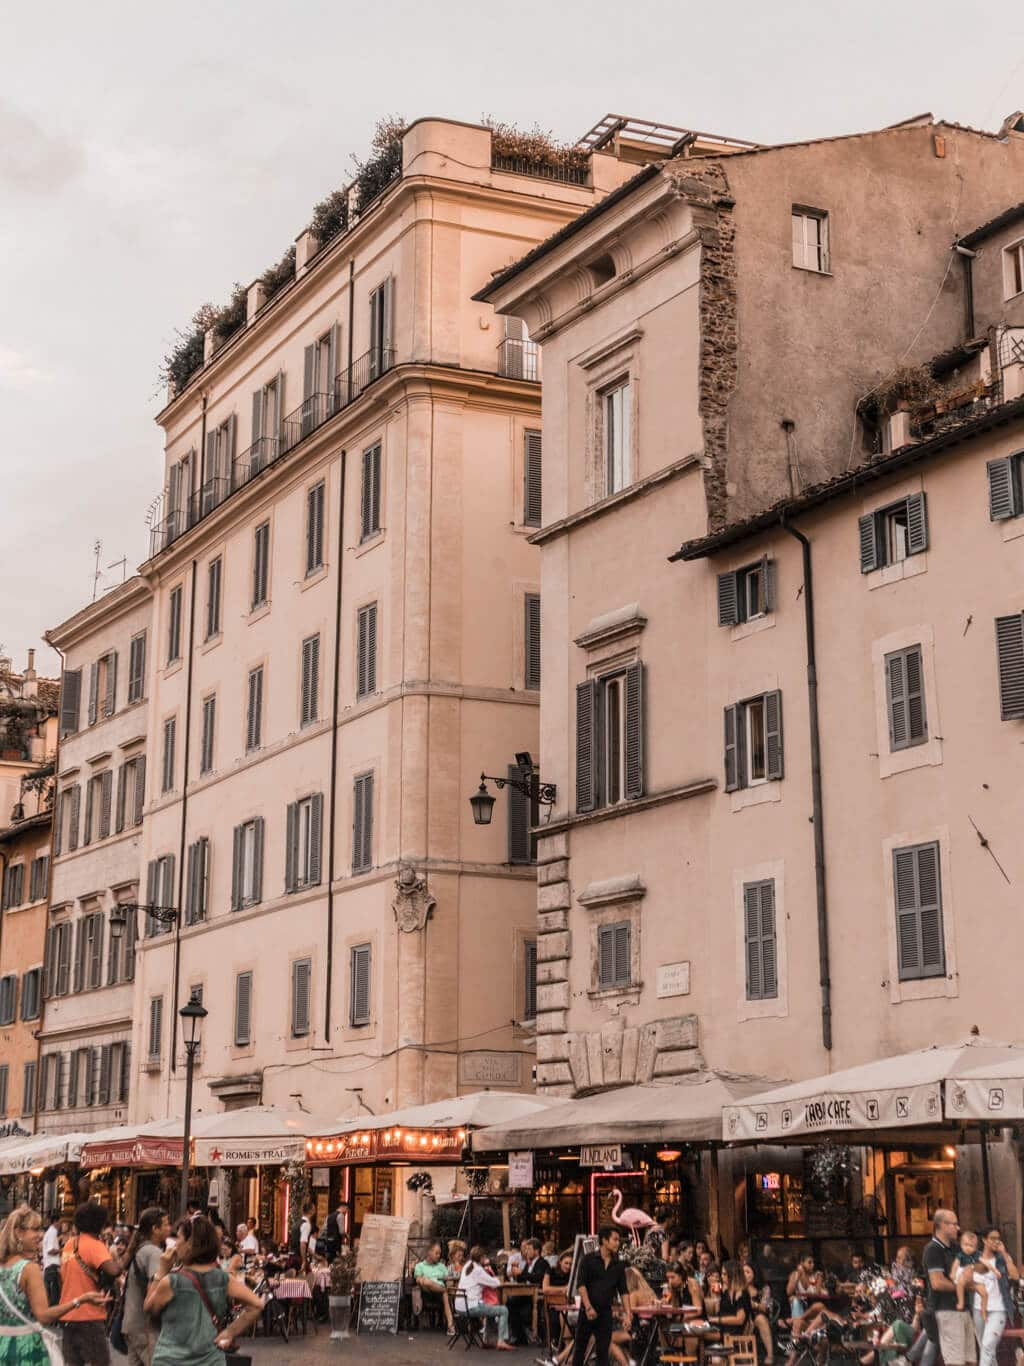 A Guide For Planning A Trip To Rome - Things to do in romantic Rome {3 day itinerary, including food & restaurants tips, shopping and sightseeing}